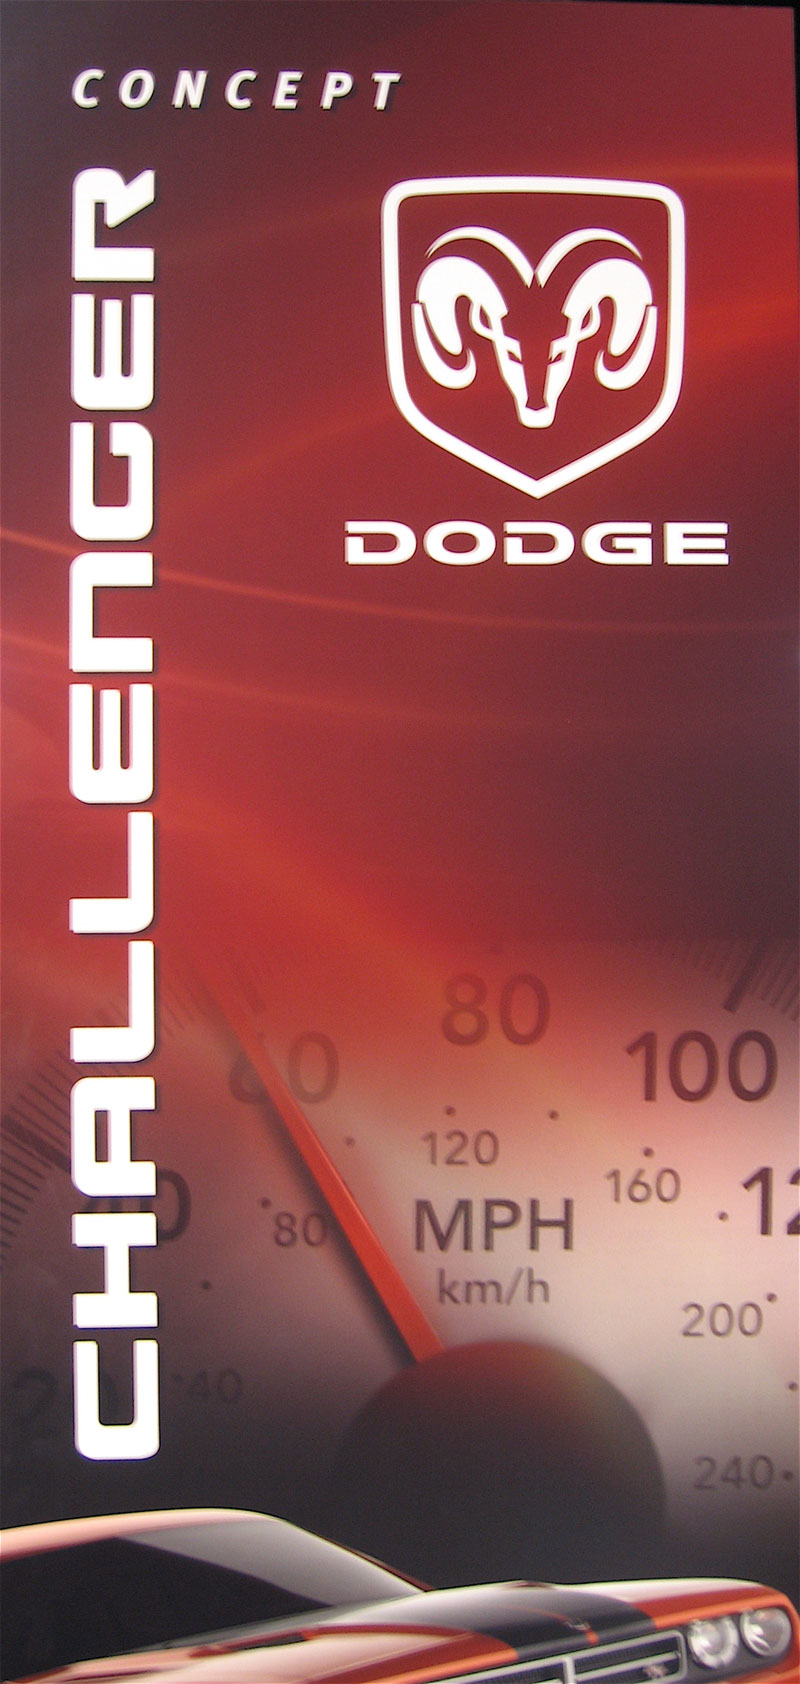 Dodge emblem, from the 2007